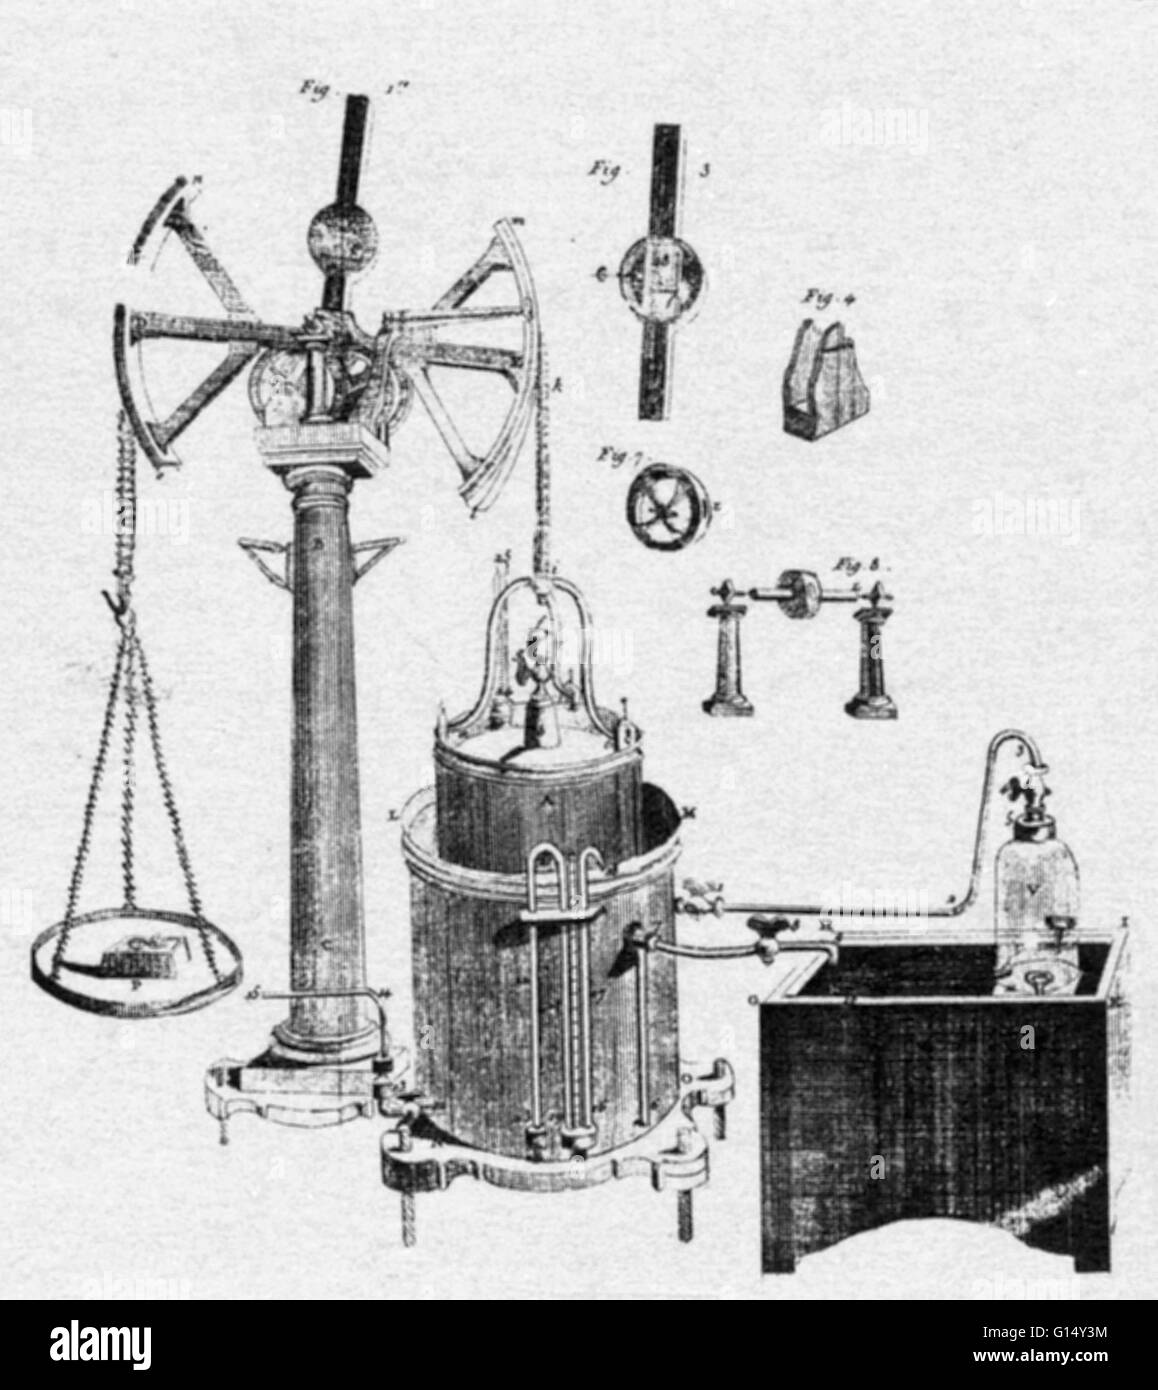 a study on the experiment of antoine lavoisier on the element of carbon The video shows the apparatus used by antoine lavoisier for studying the composition of the air the visualization is based on an illustration in traité élémentaire de chimie (elements of chemistry) written by lavoisier published in 1790.